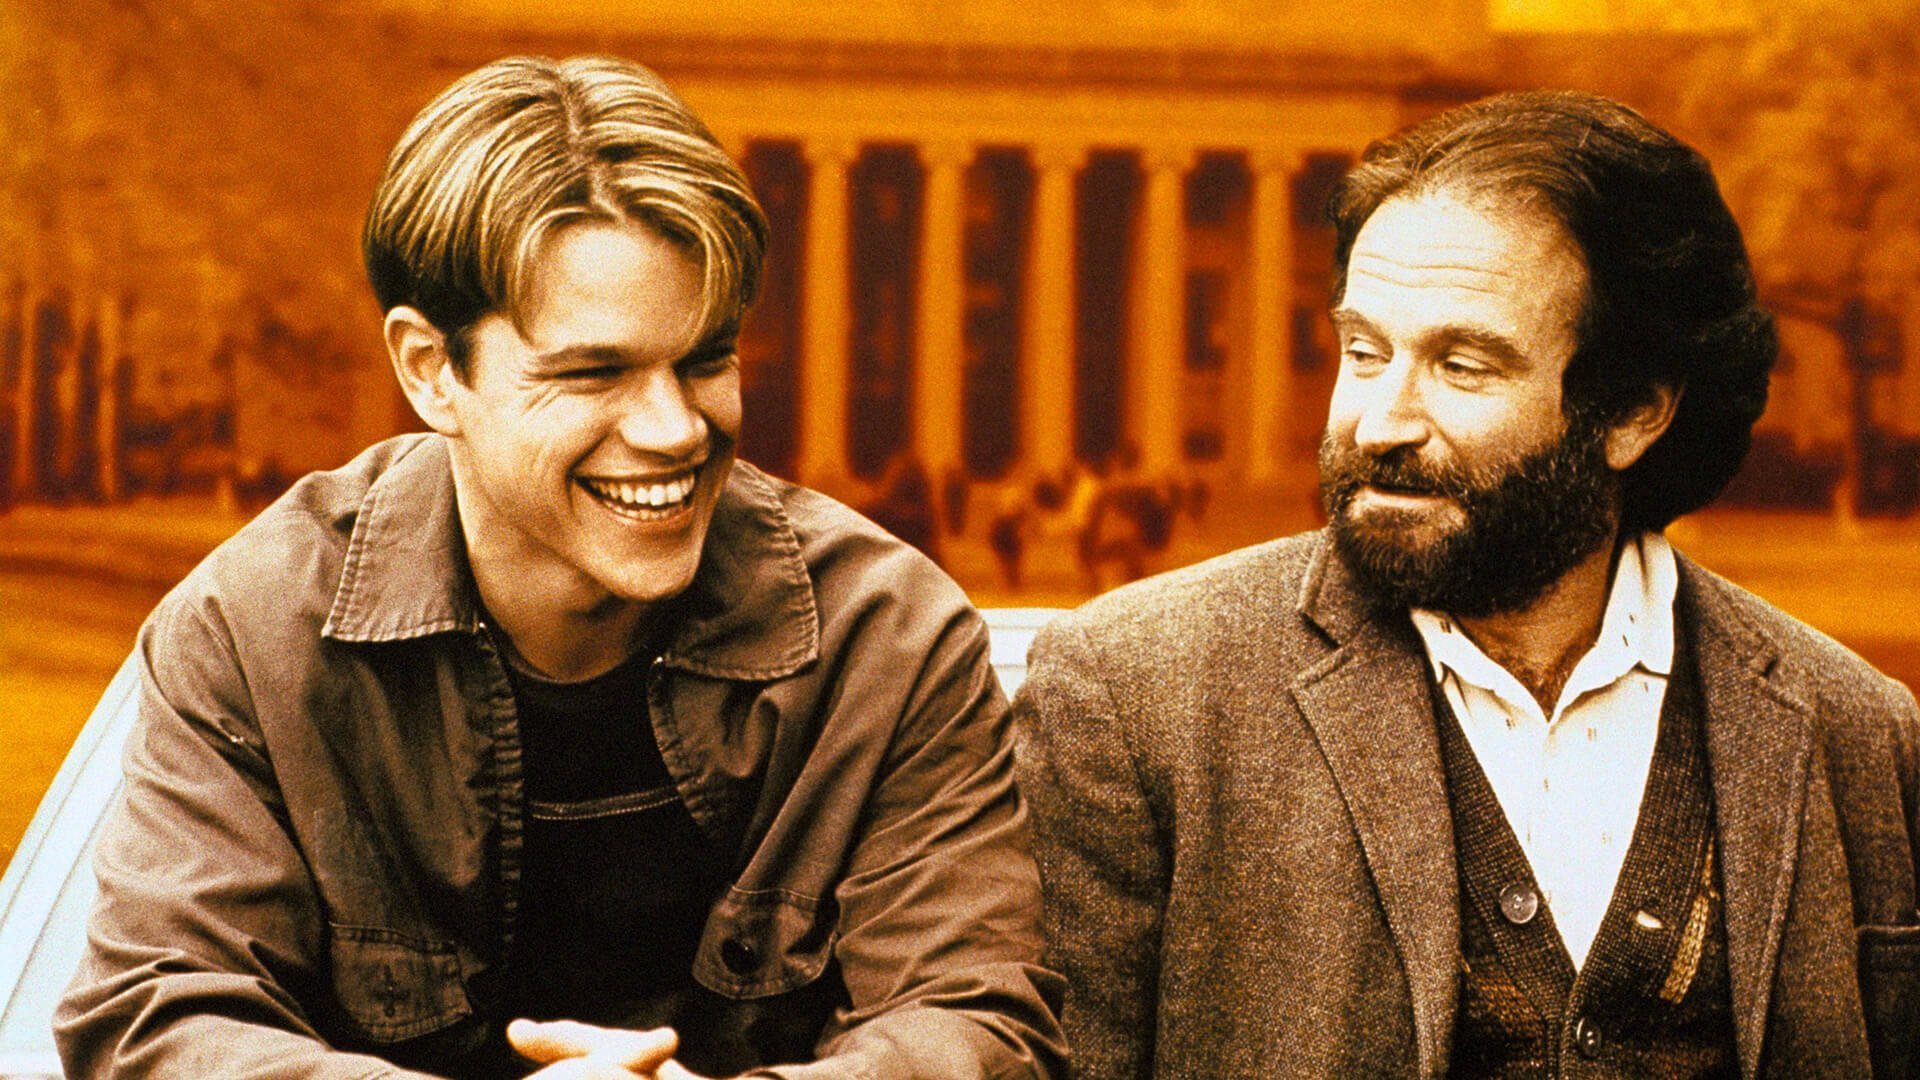 Matt Damon and Robin Williams in the film Good Will Hunting.